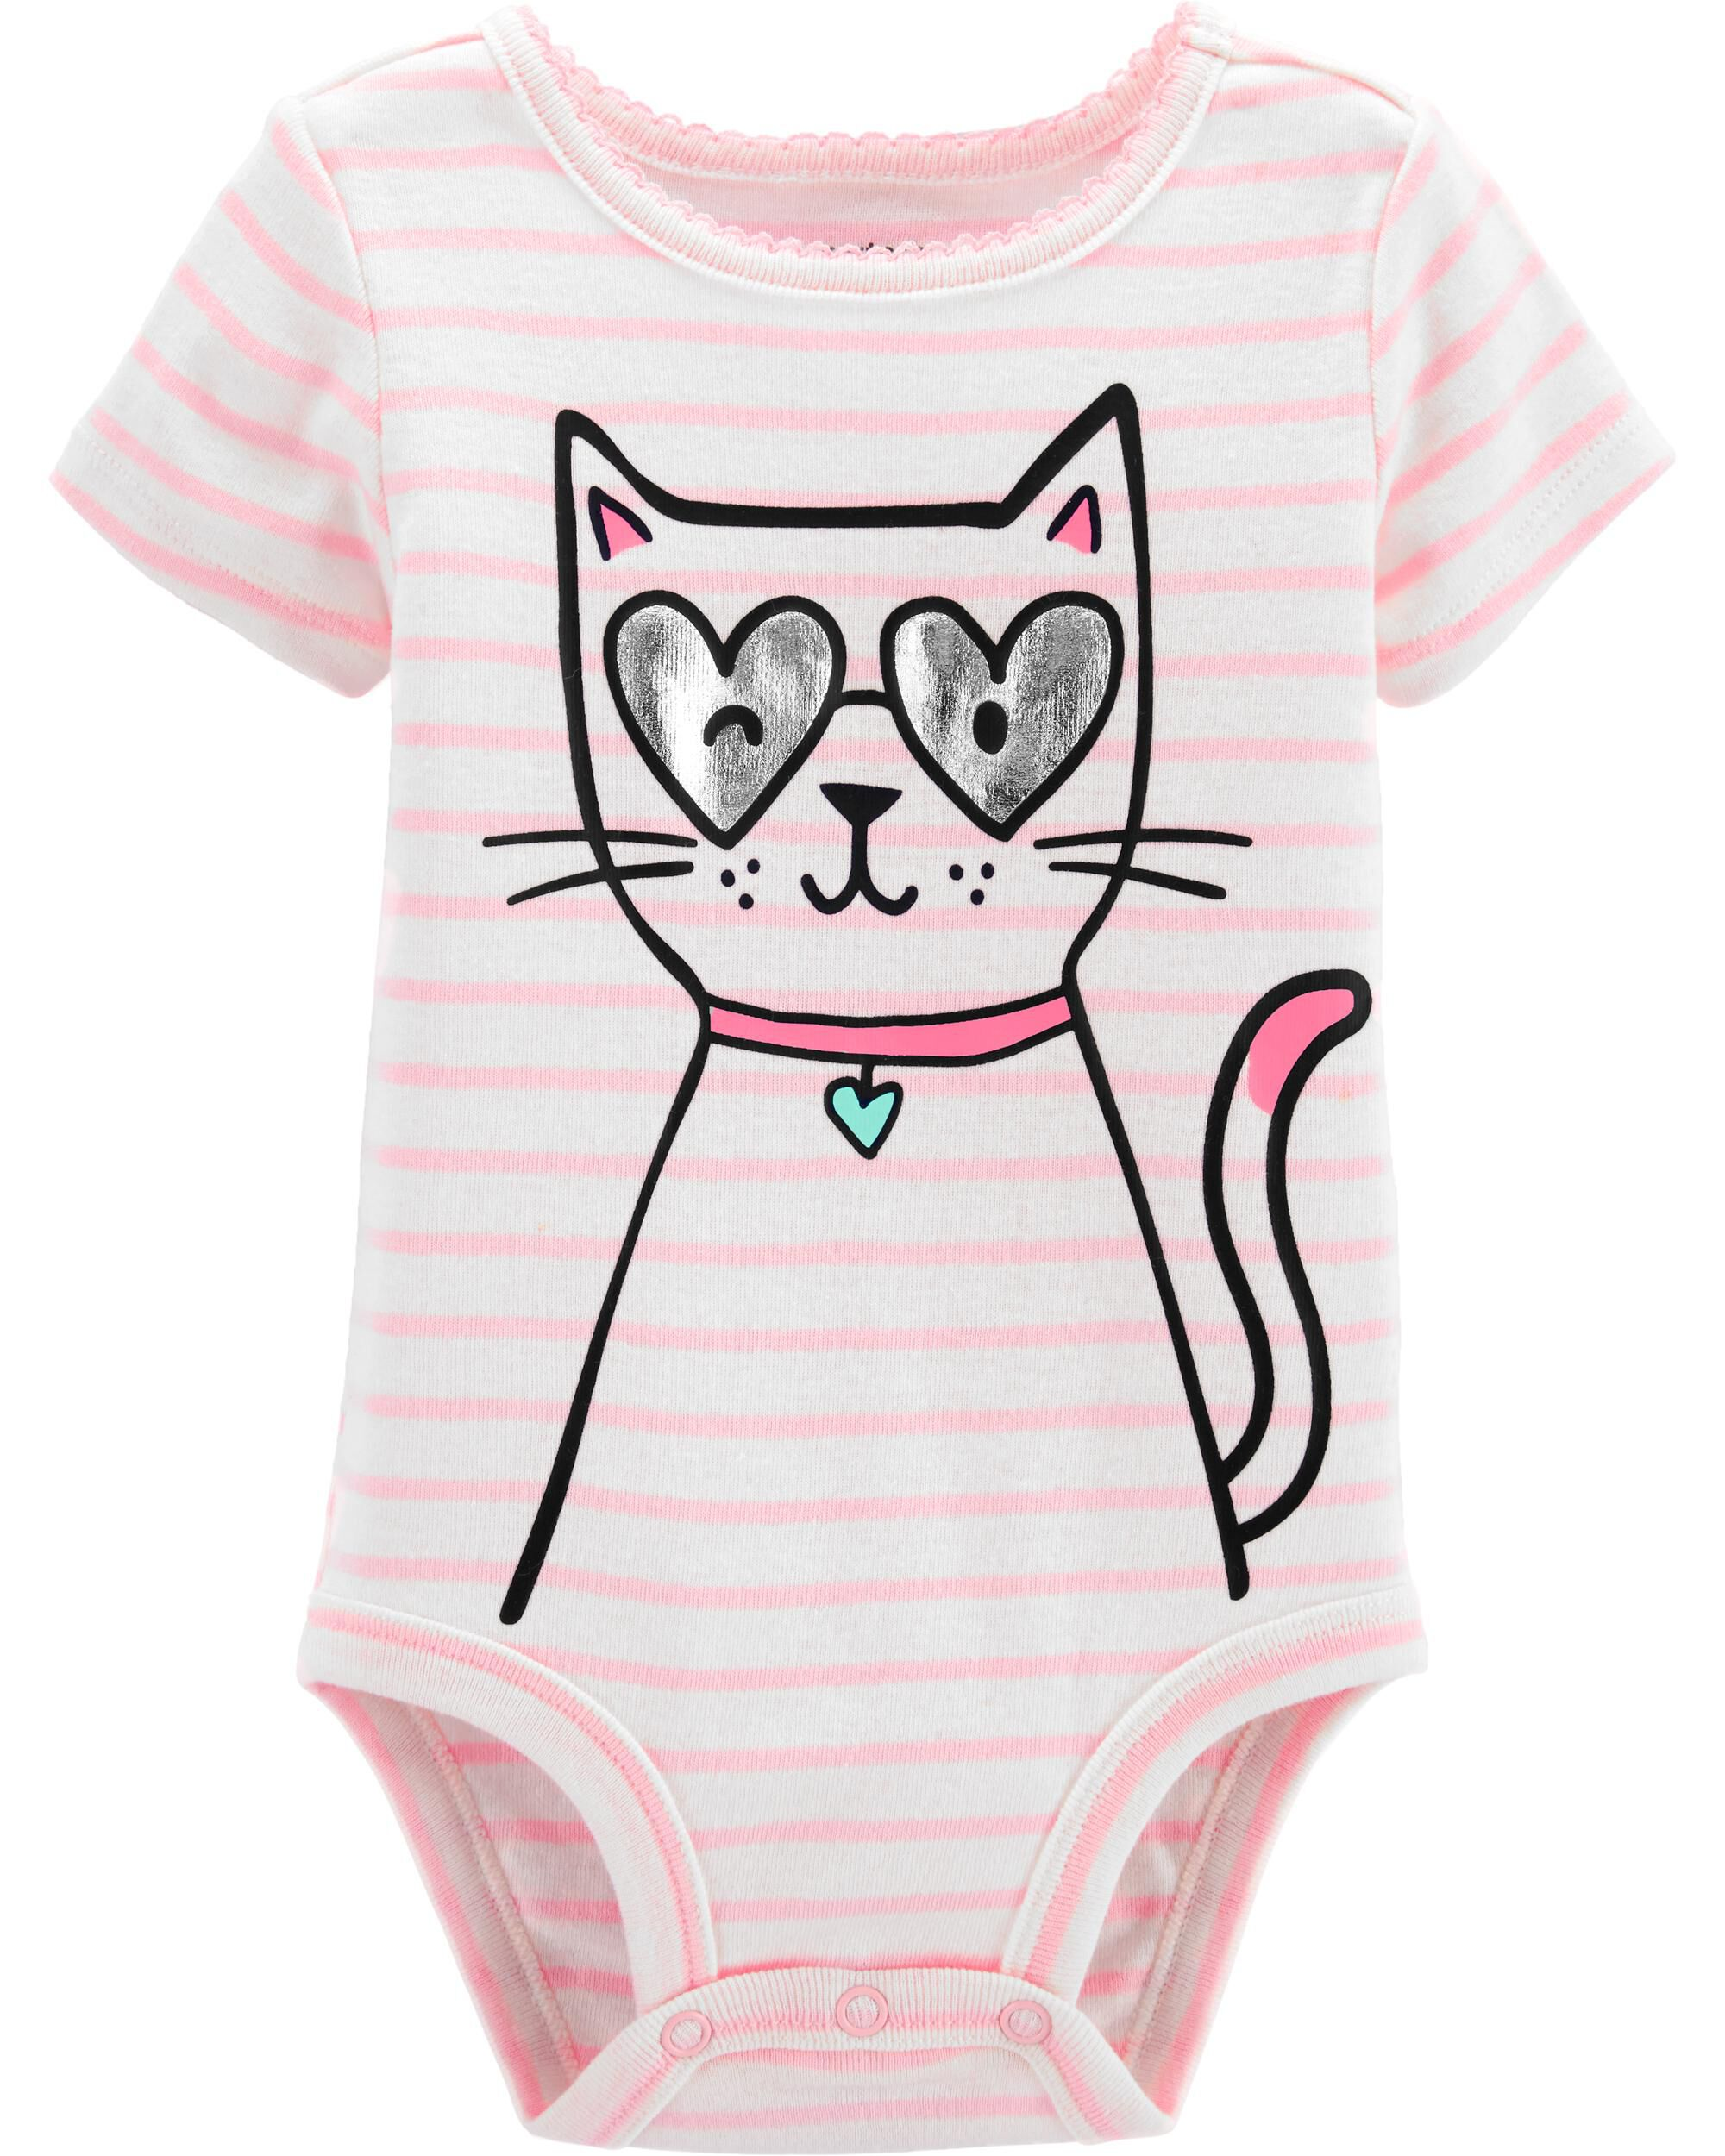 *CLEARANCE*Cat Collectible Bodysuit